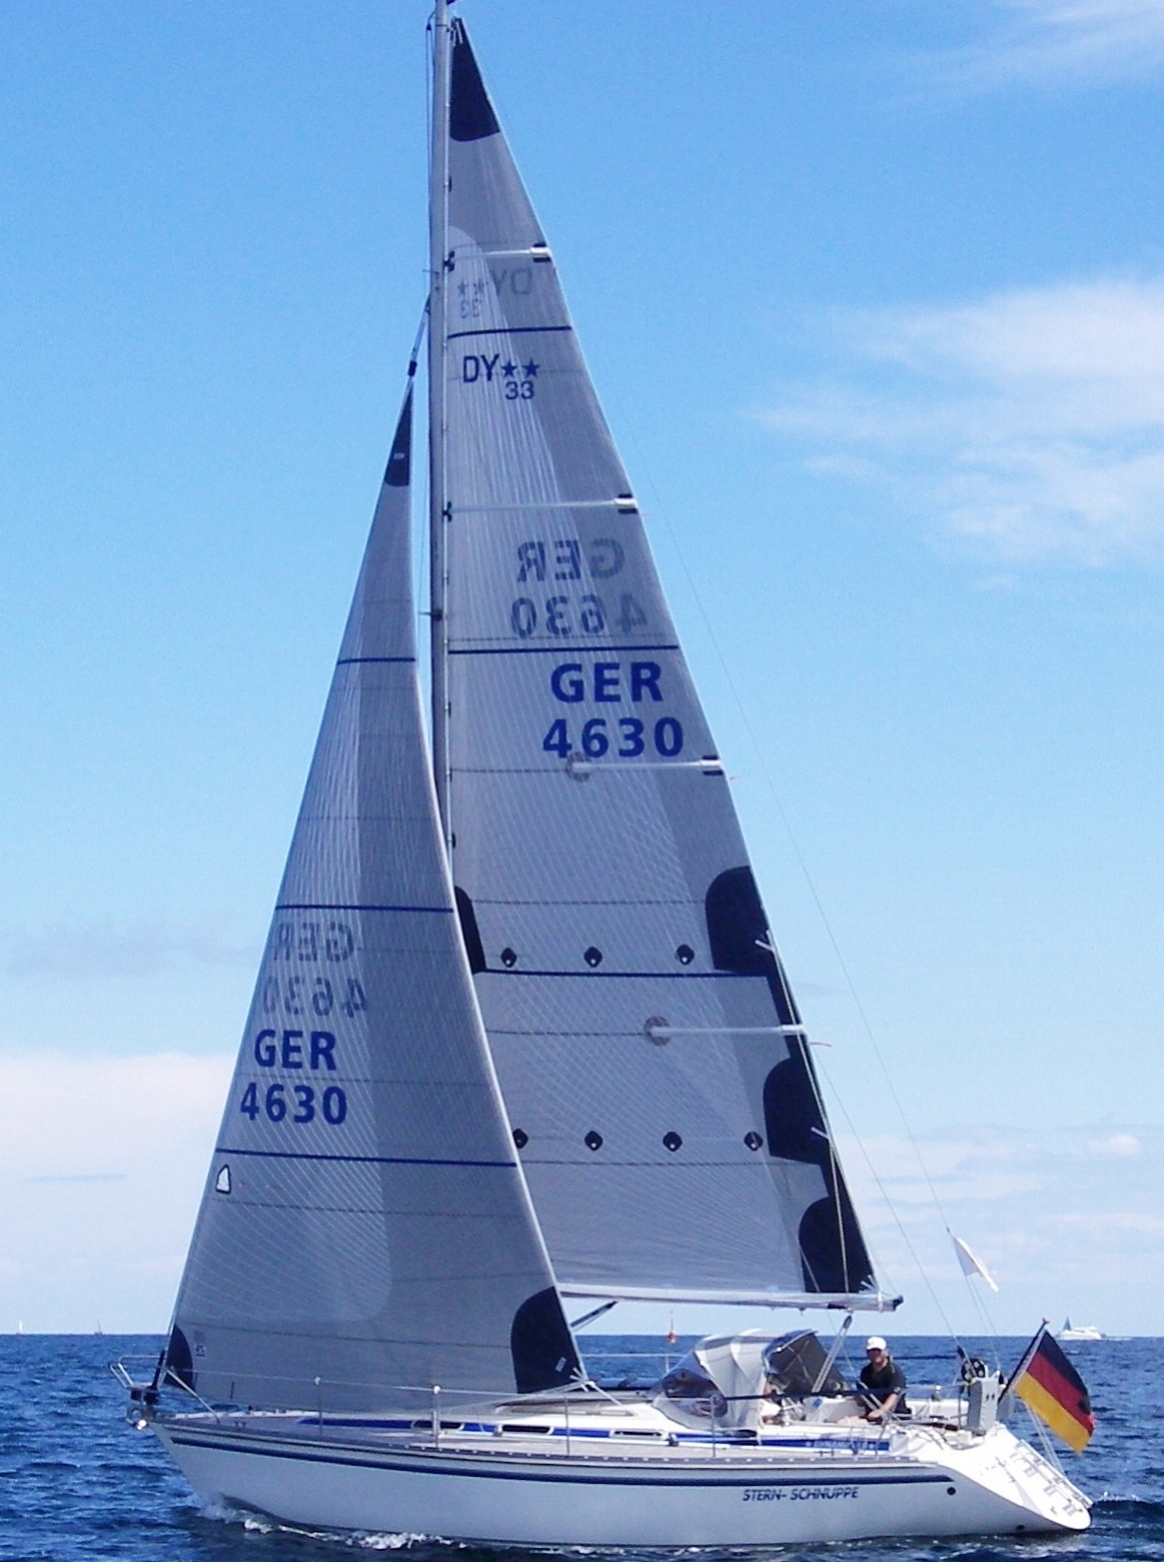 The genoa shown above has taffeta on the part of the sail overlapping the mast to protect the reinforcing fibers and the sail's mylar layer. This boat's mainsail also has a partial taffeta layer up the whole leech.